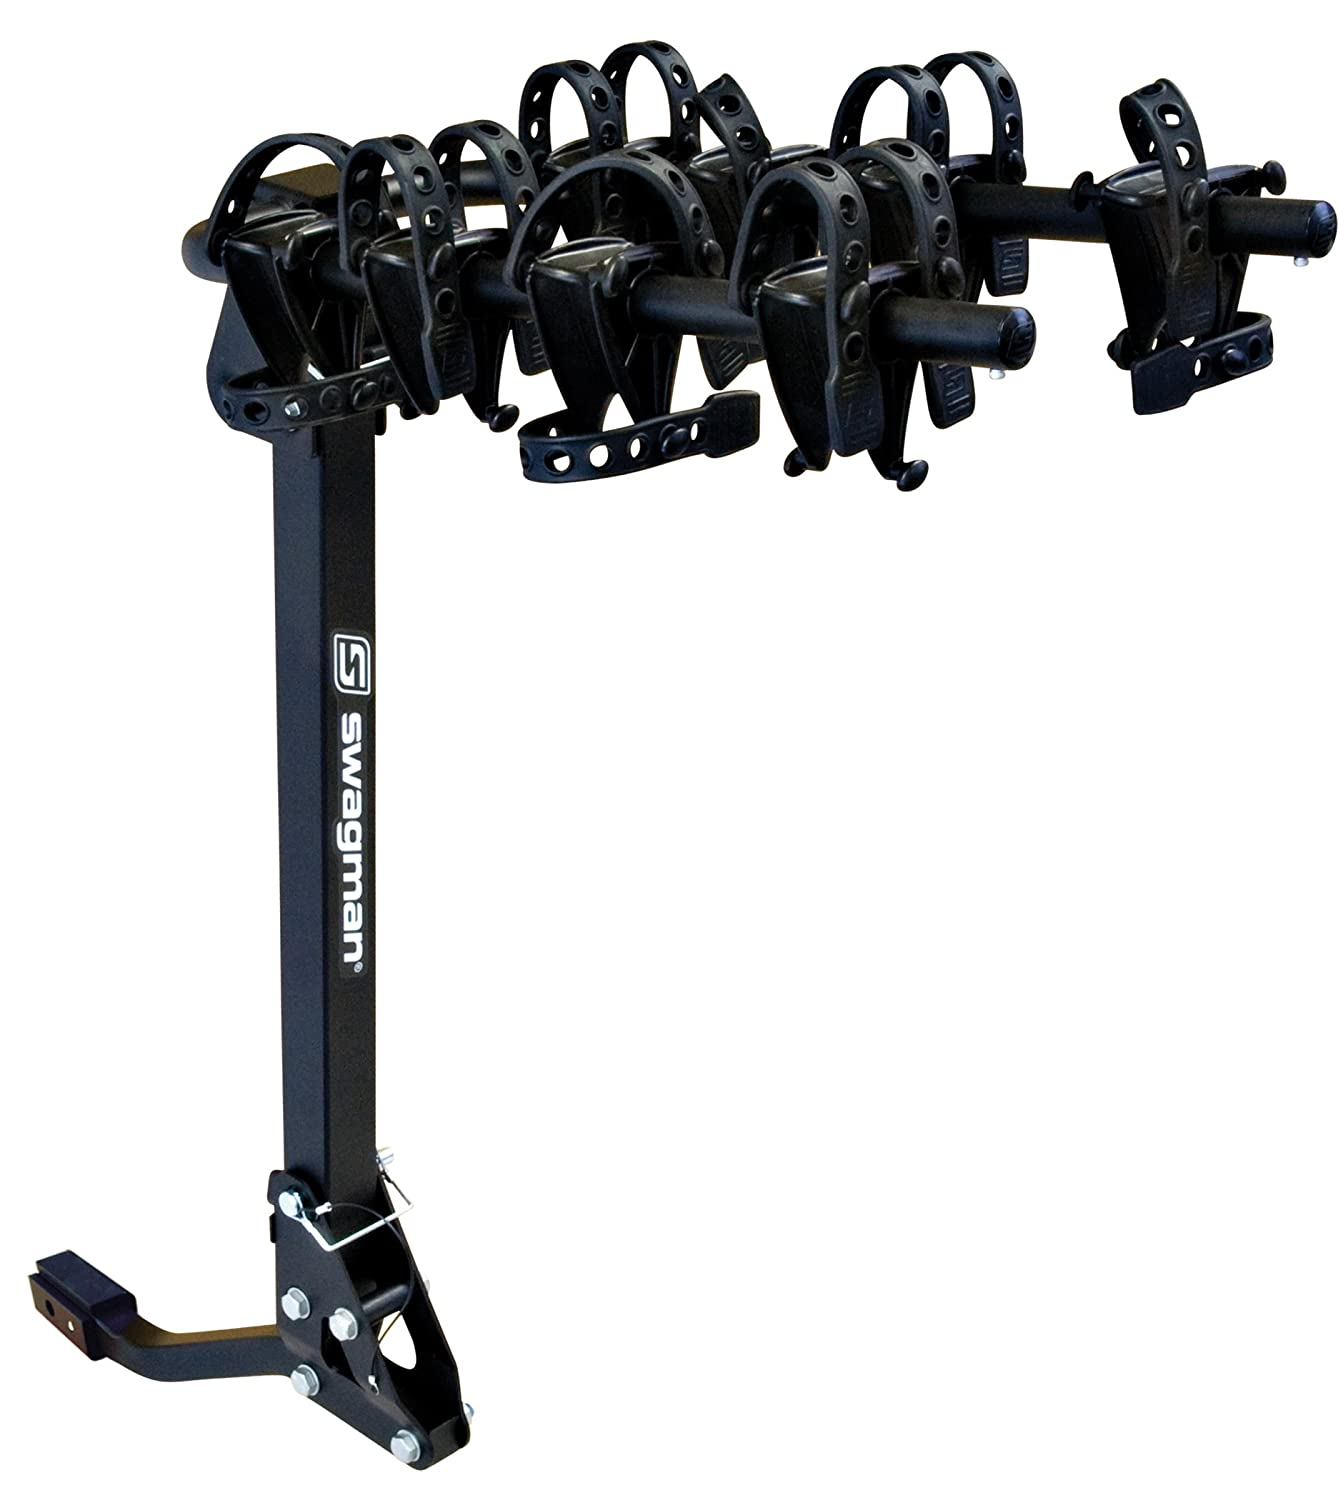 bikes hitch choice products about rack bike new truck best carrier car itm mount bicycle auto details